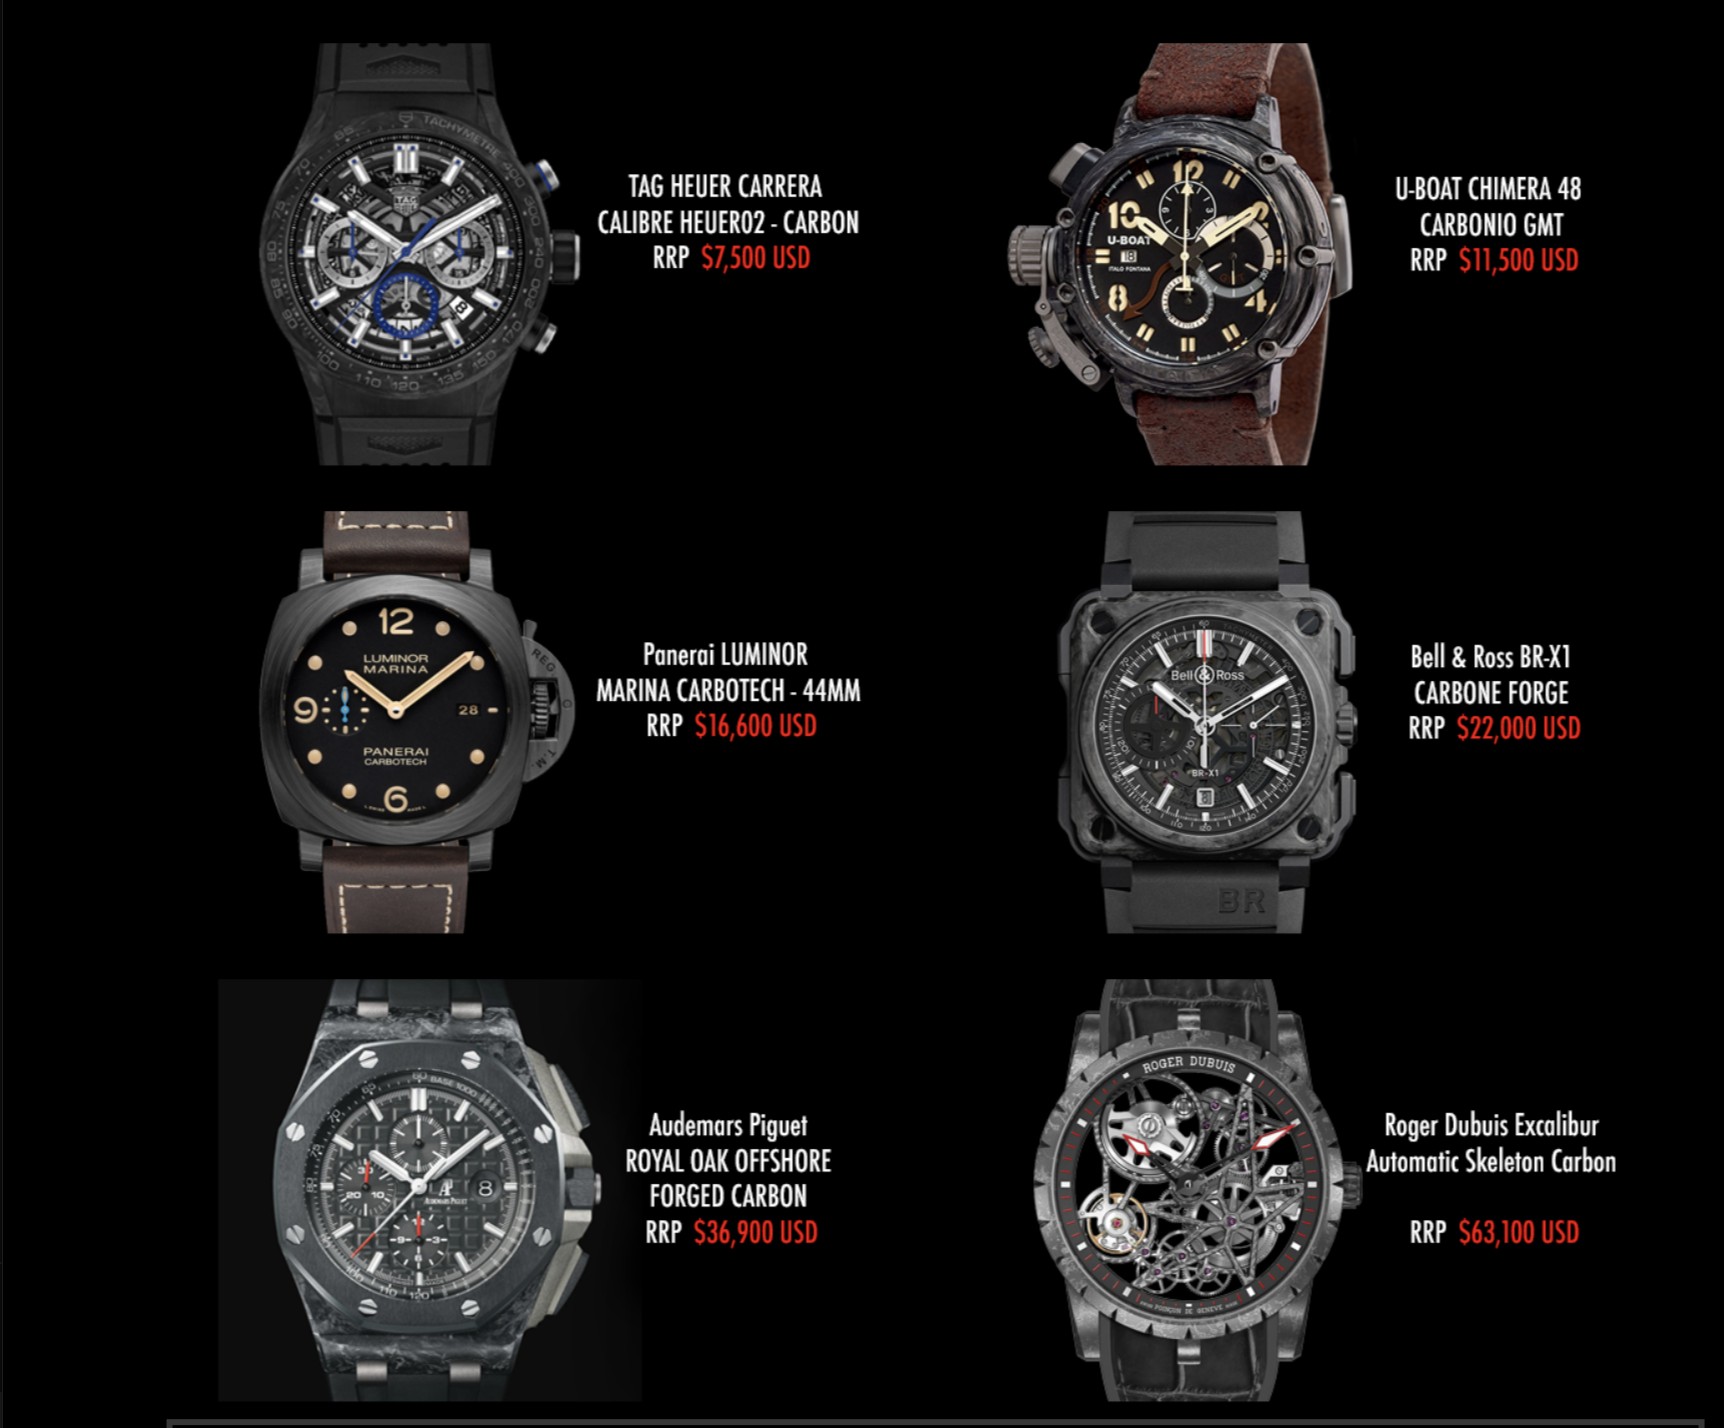 Comparing forged carbon watches